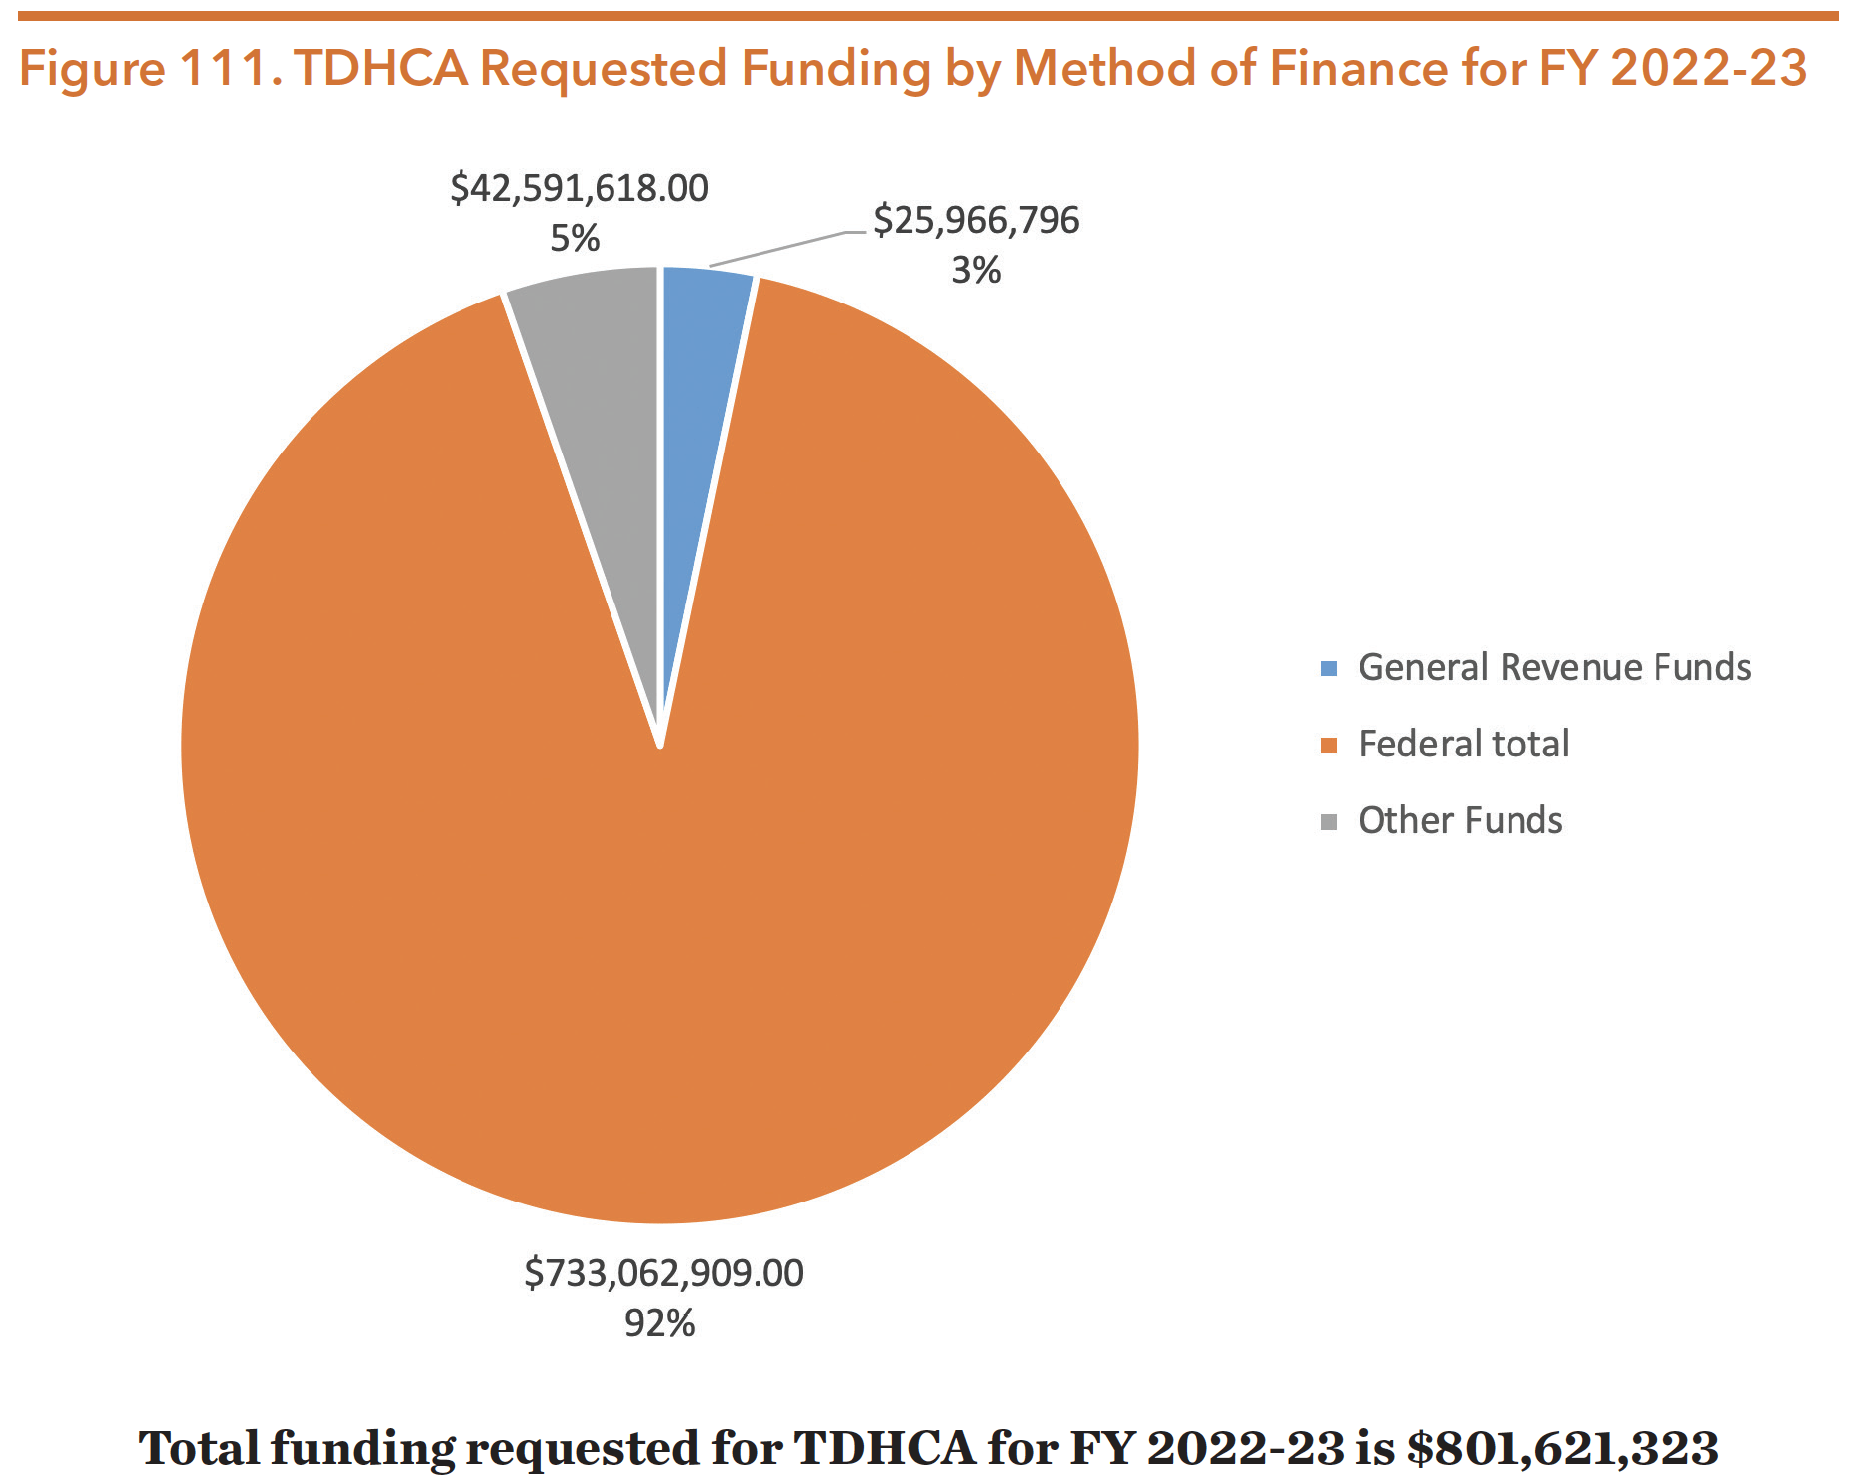 Figure 111. TDHCA Requested Funding by Method of Finance for FY 2022-23